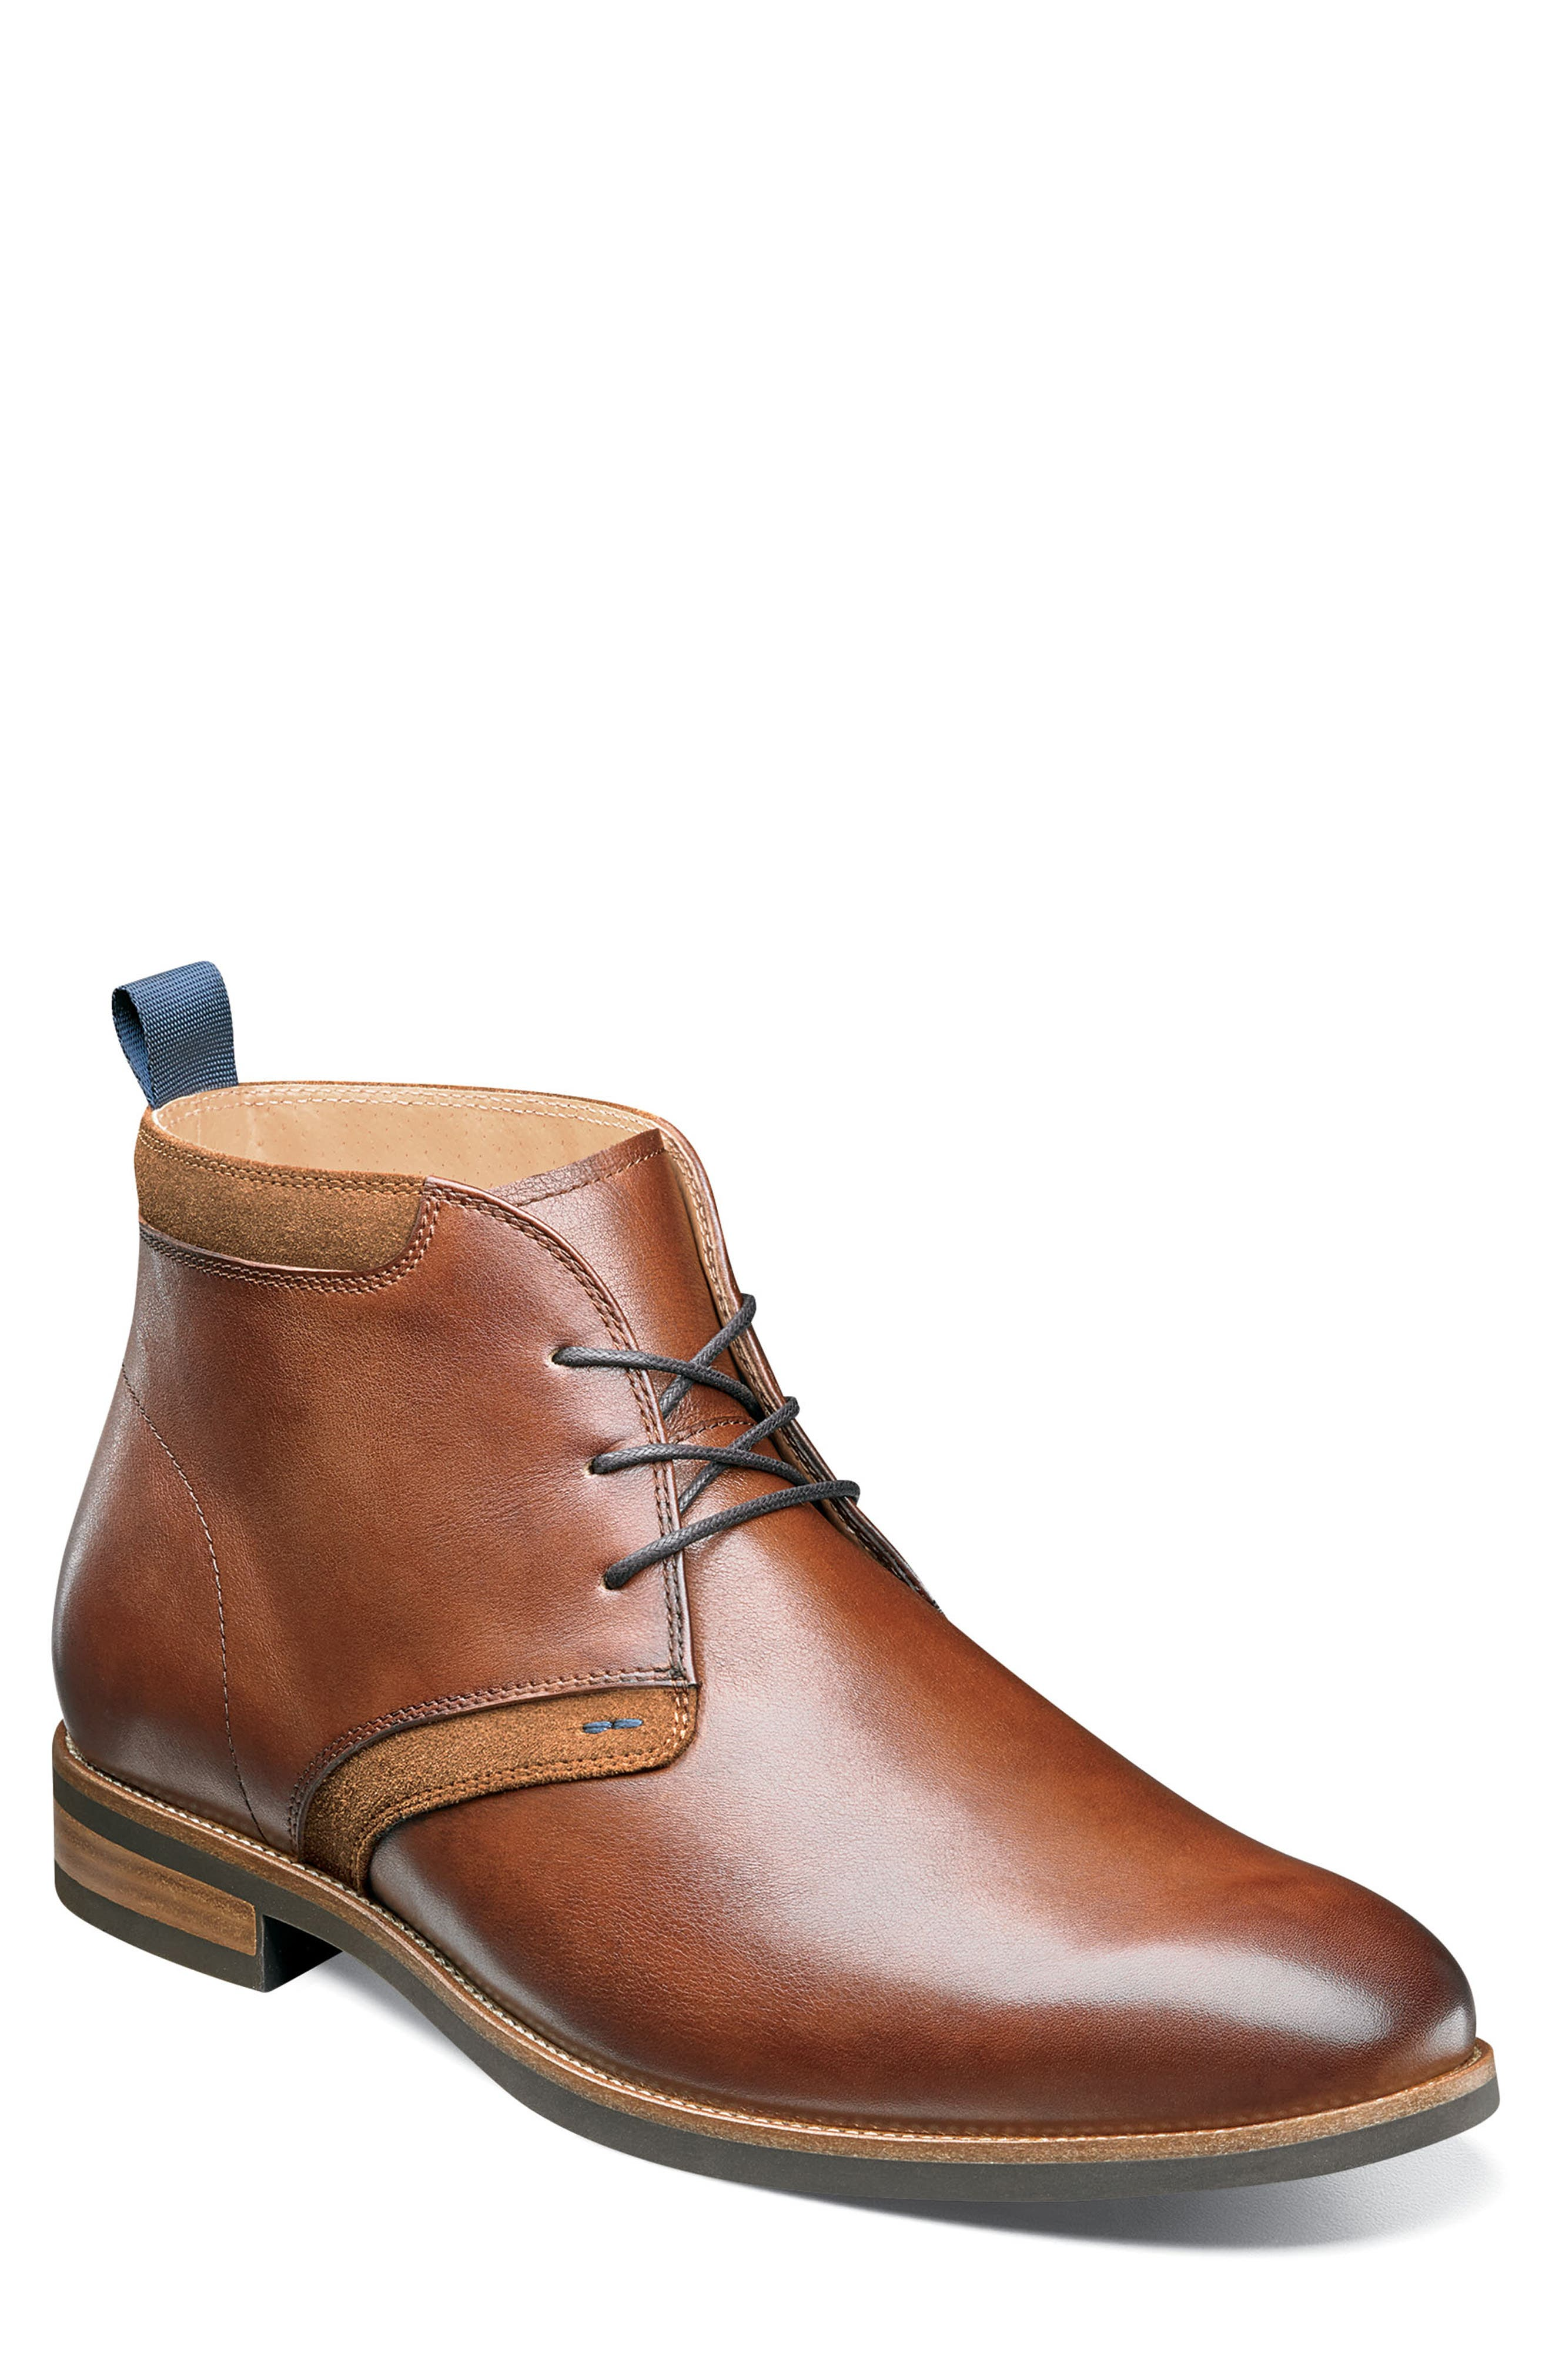 FLORSHEIM Uptown Chukka Boot, Main, color, COGNAC LEATHER